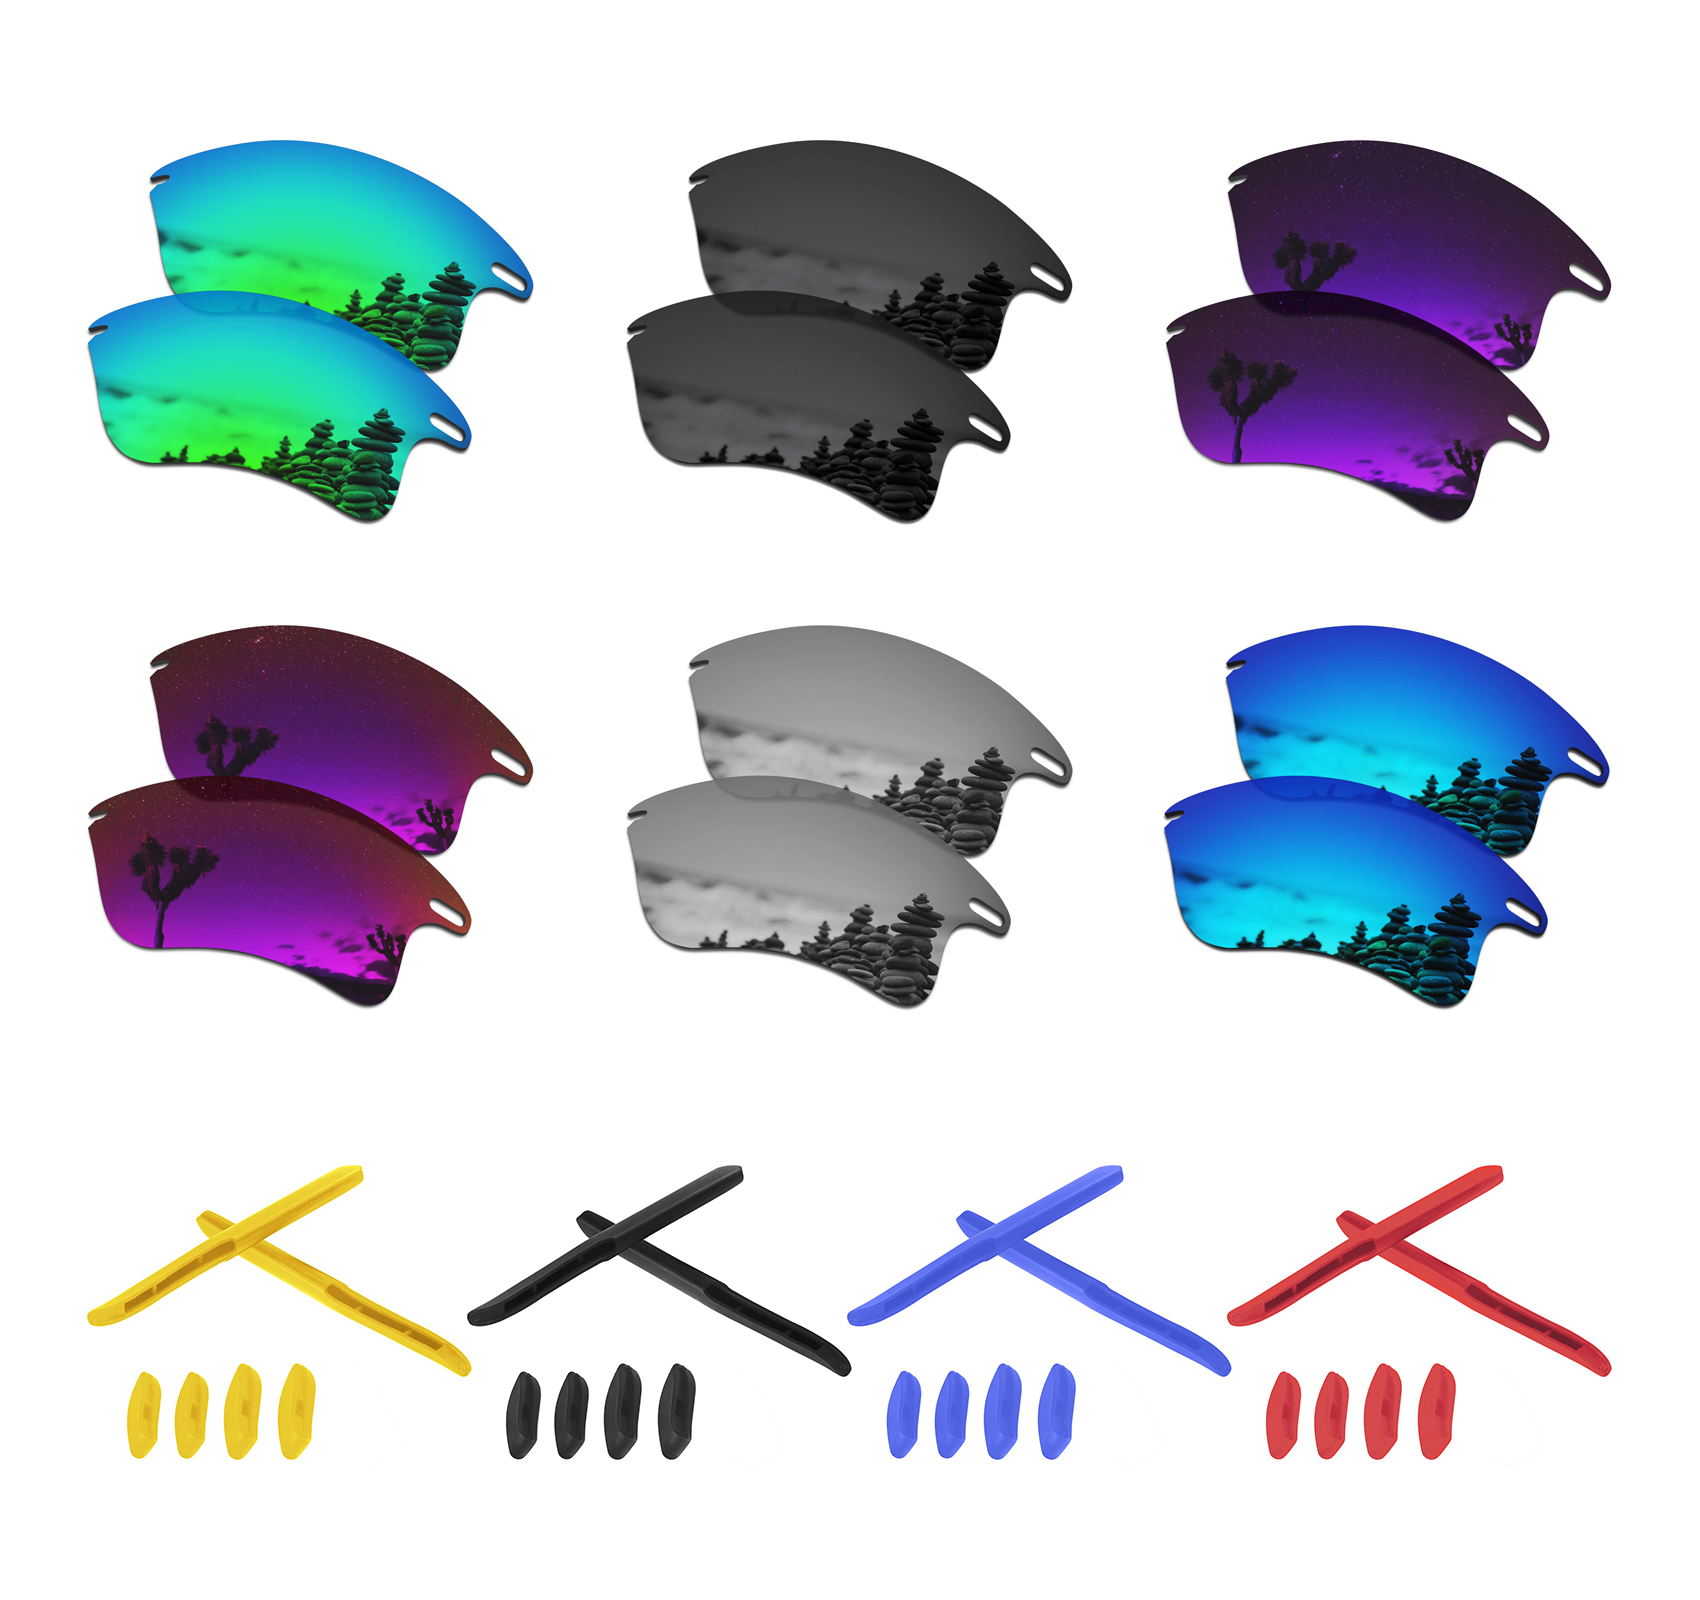 SmartVLT Polarized Replacement Lenses For Oakley Fast Jacket XL Sunglasses - Multiple Options